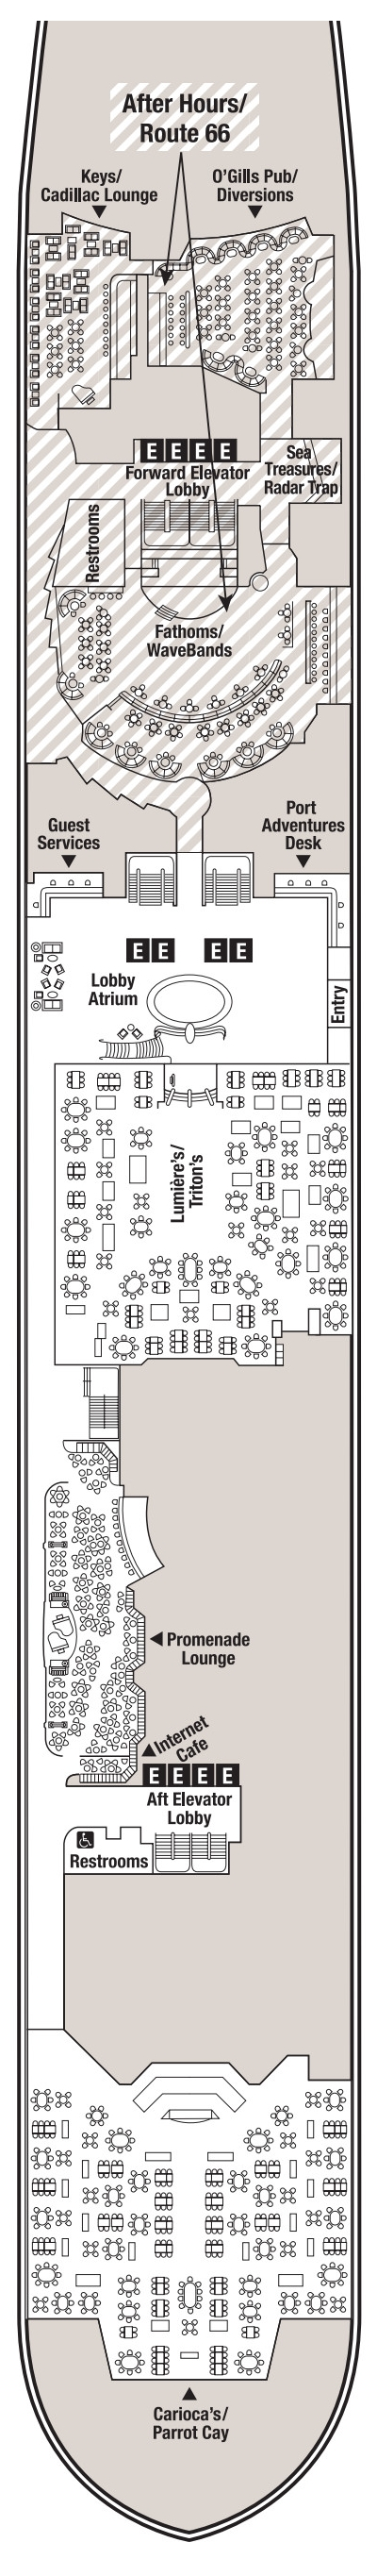 Disney Magic Deck 3 layout